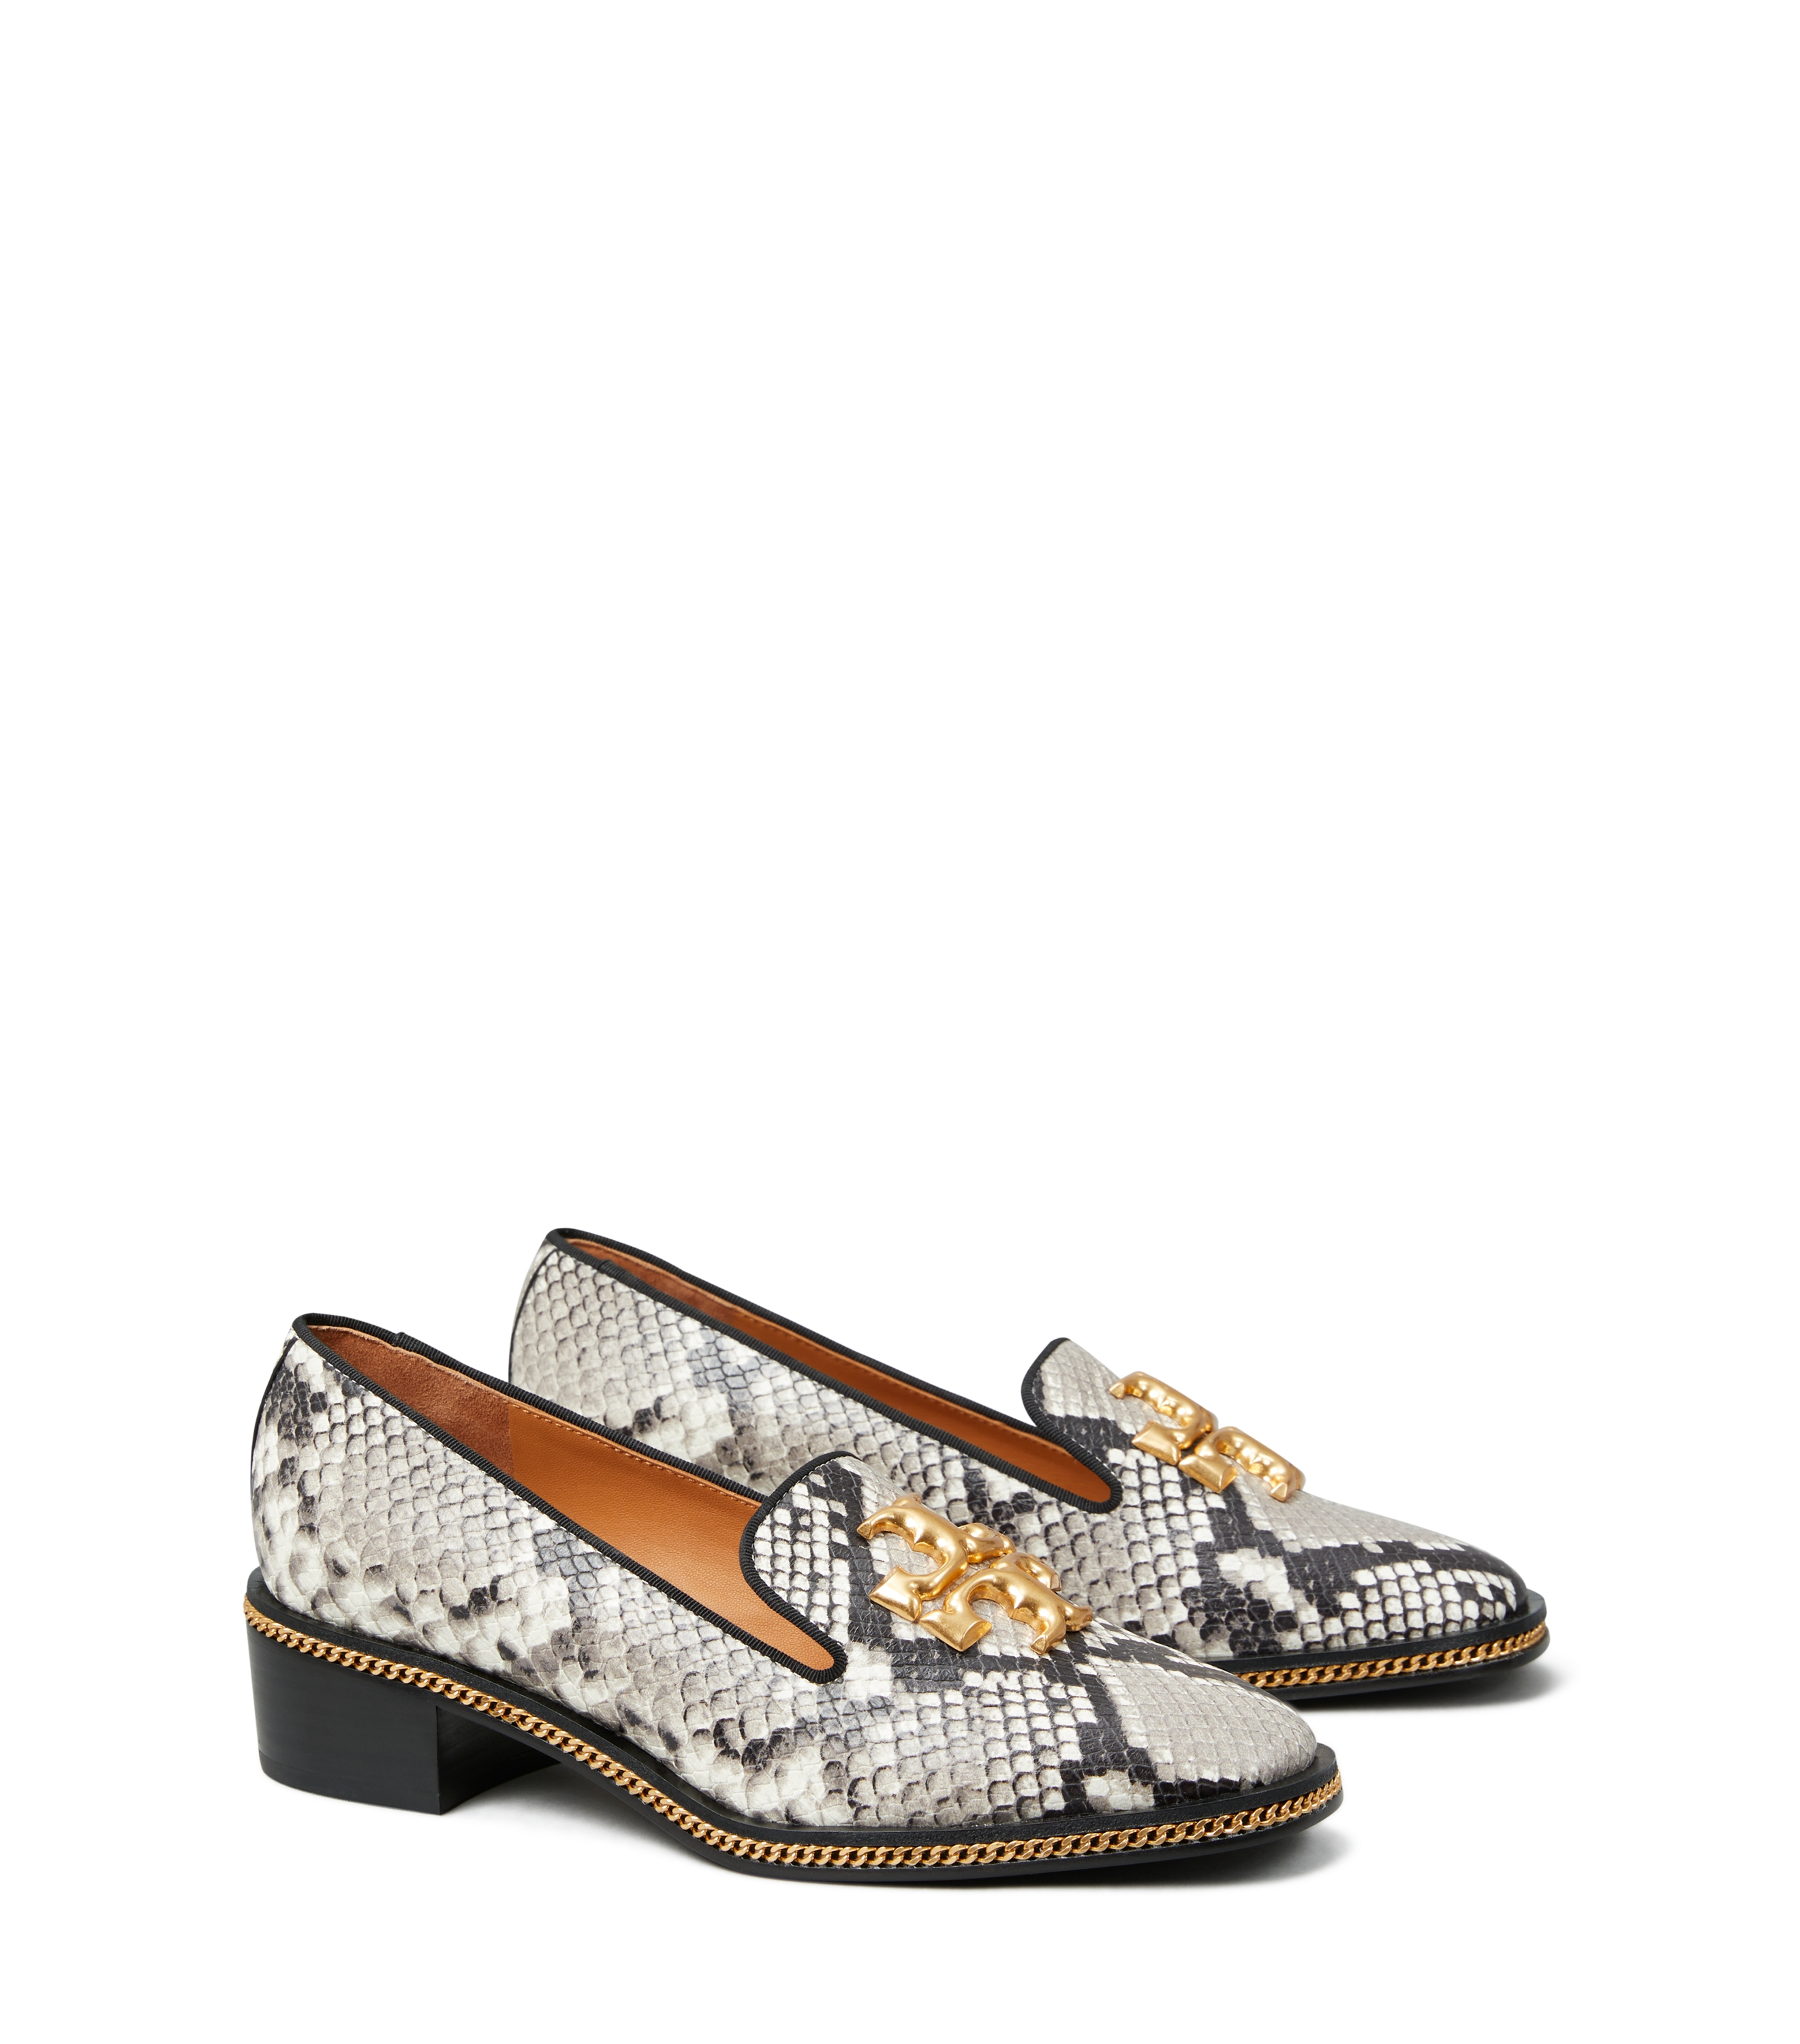 TORY BURCH FREYA 45MM LOAFER